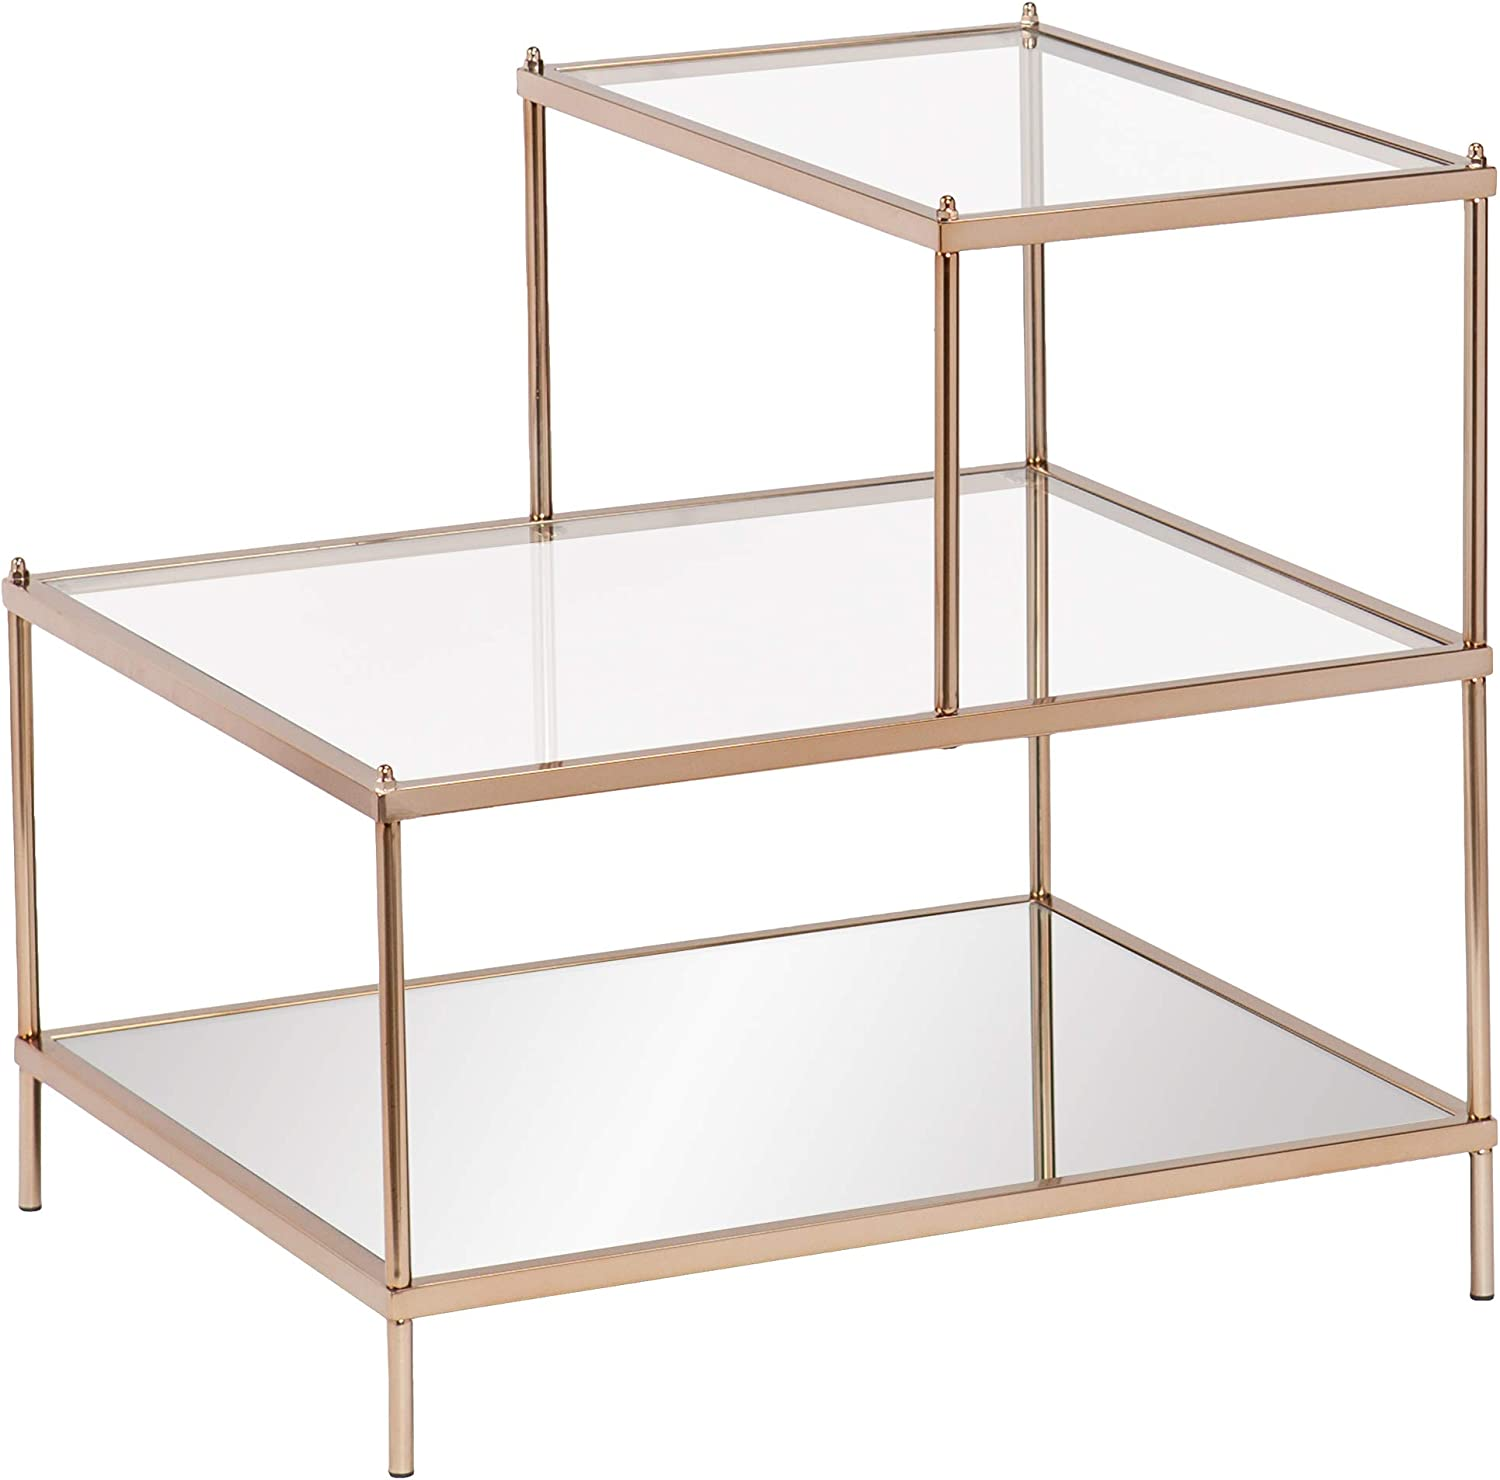 Shop Southern Enterprises Knox Mirrored 3-Tier Stair Step Accent Table from Amazon on Openhaus